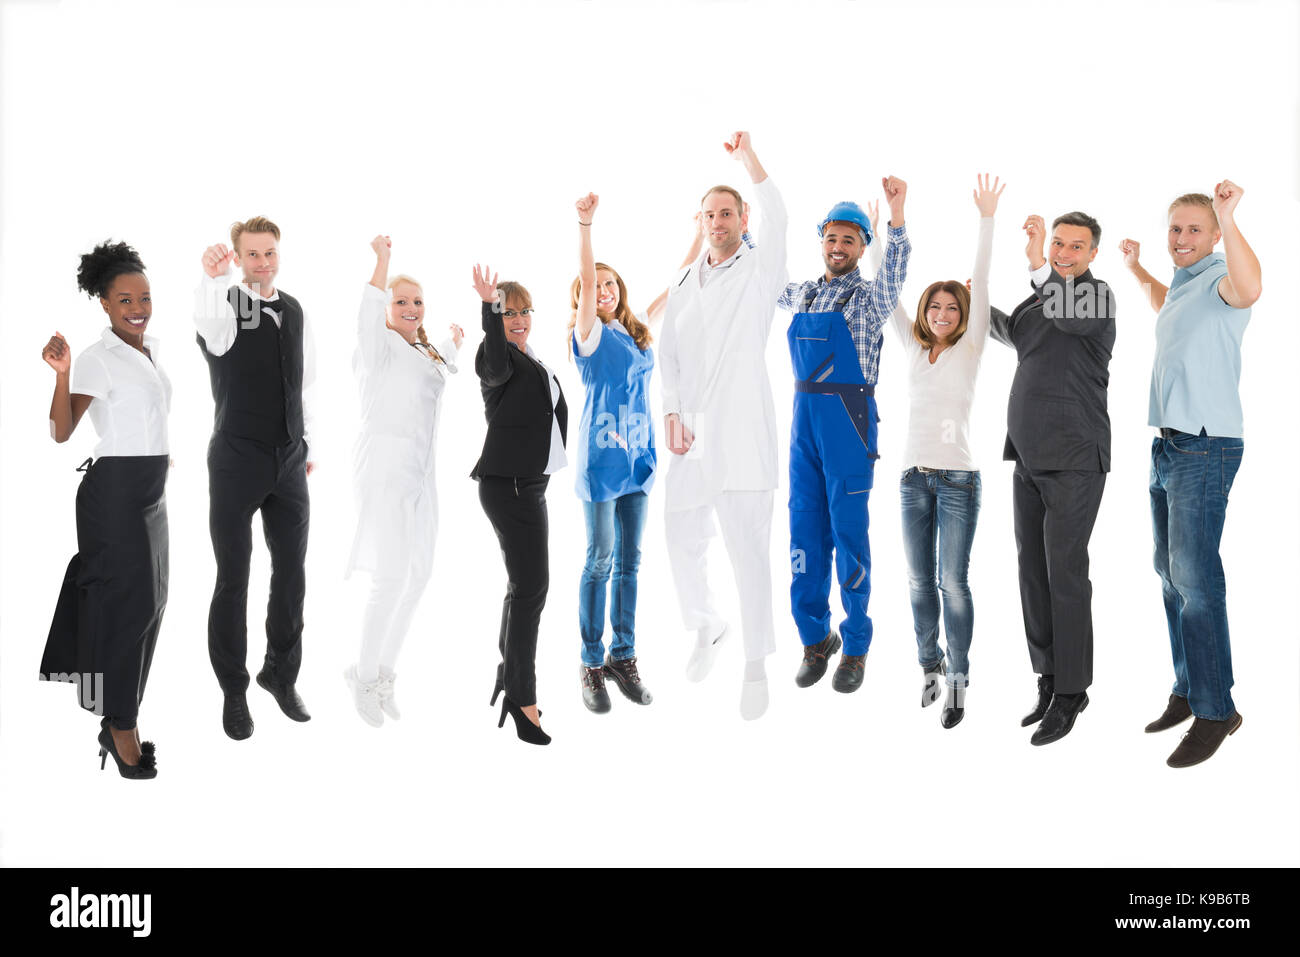 Full length portrait of people with various occupations cheering against white background - Stock Image